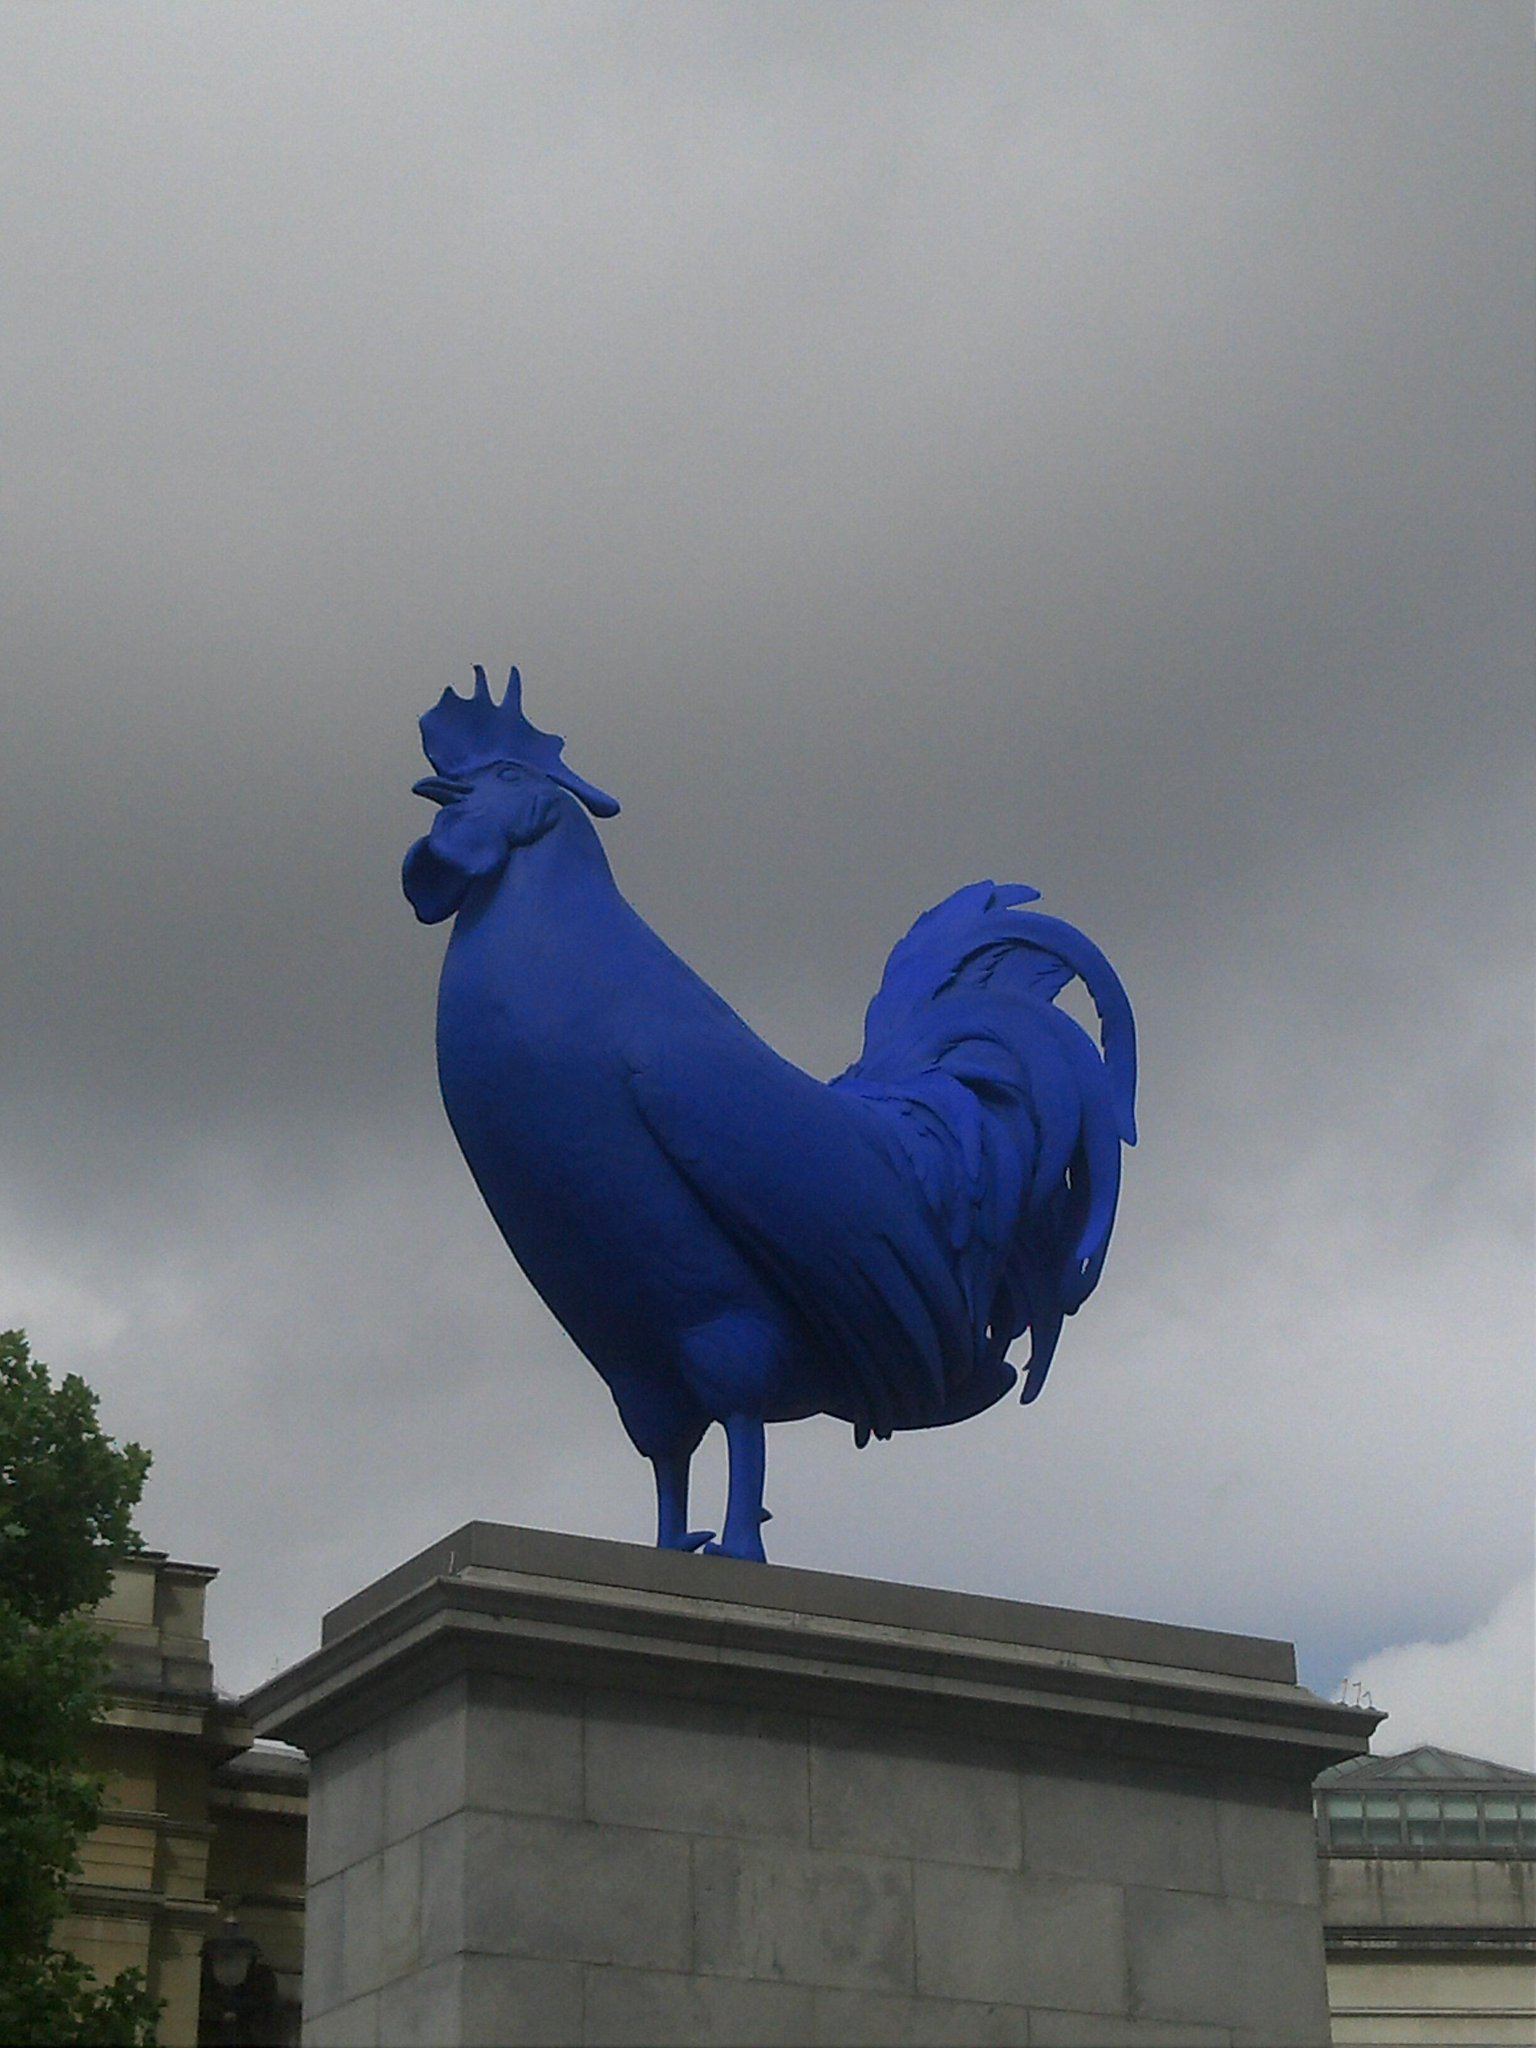 Trafalgar Square's big blue cock in all its glory> RT @chefskiss: The big bird #Fourthplinth http://t.co/MLsgAGaxL4